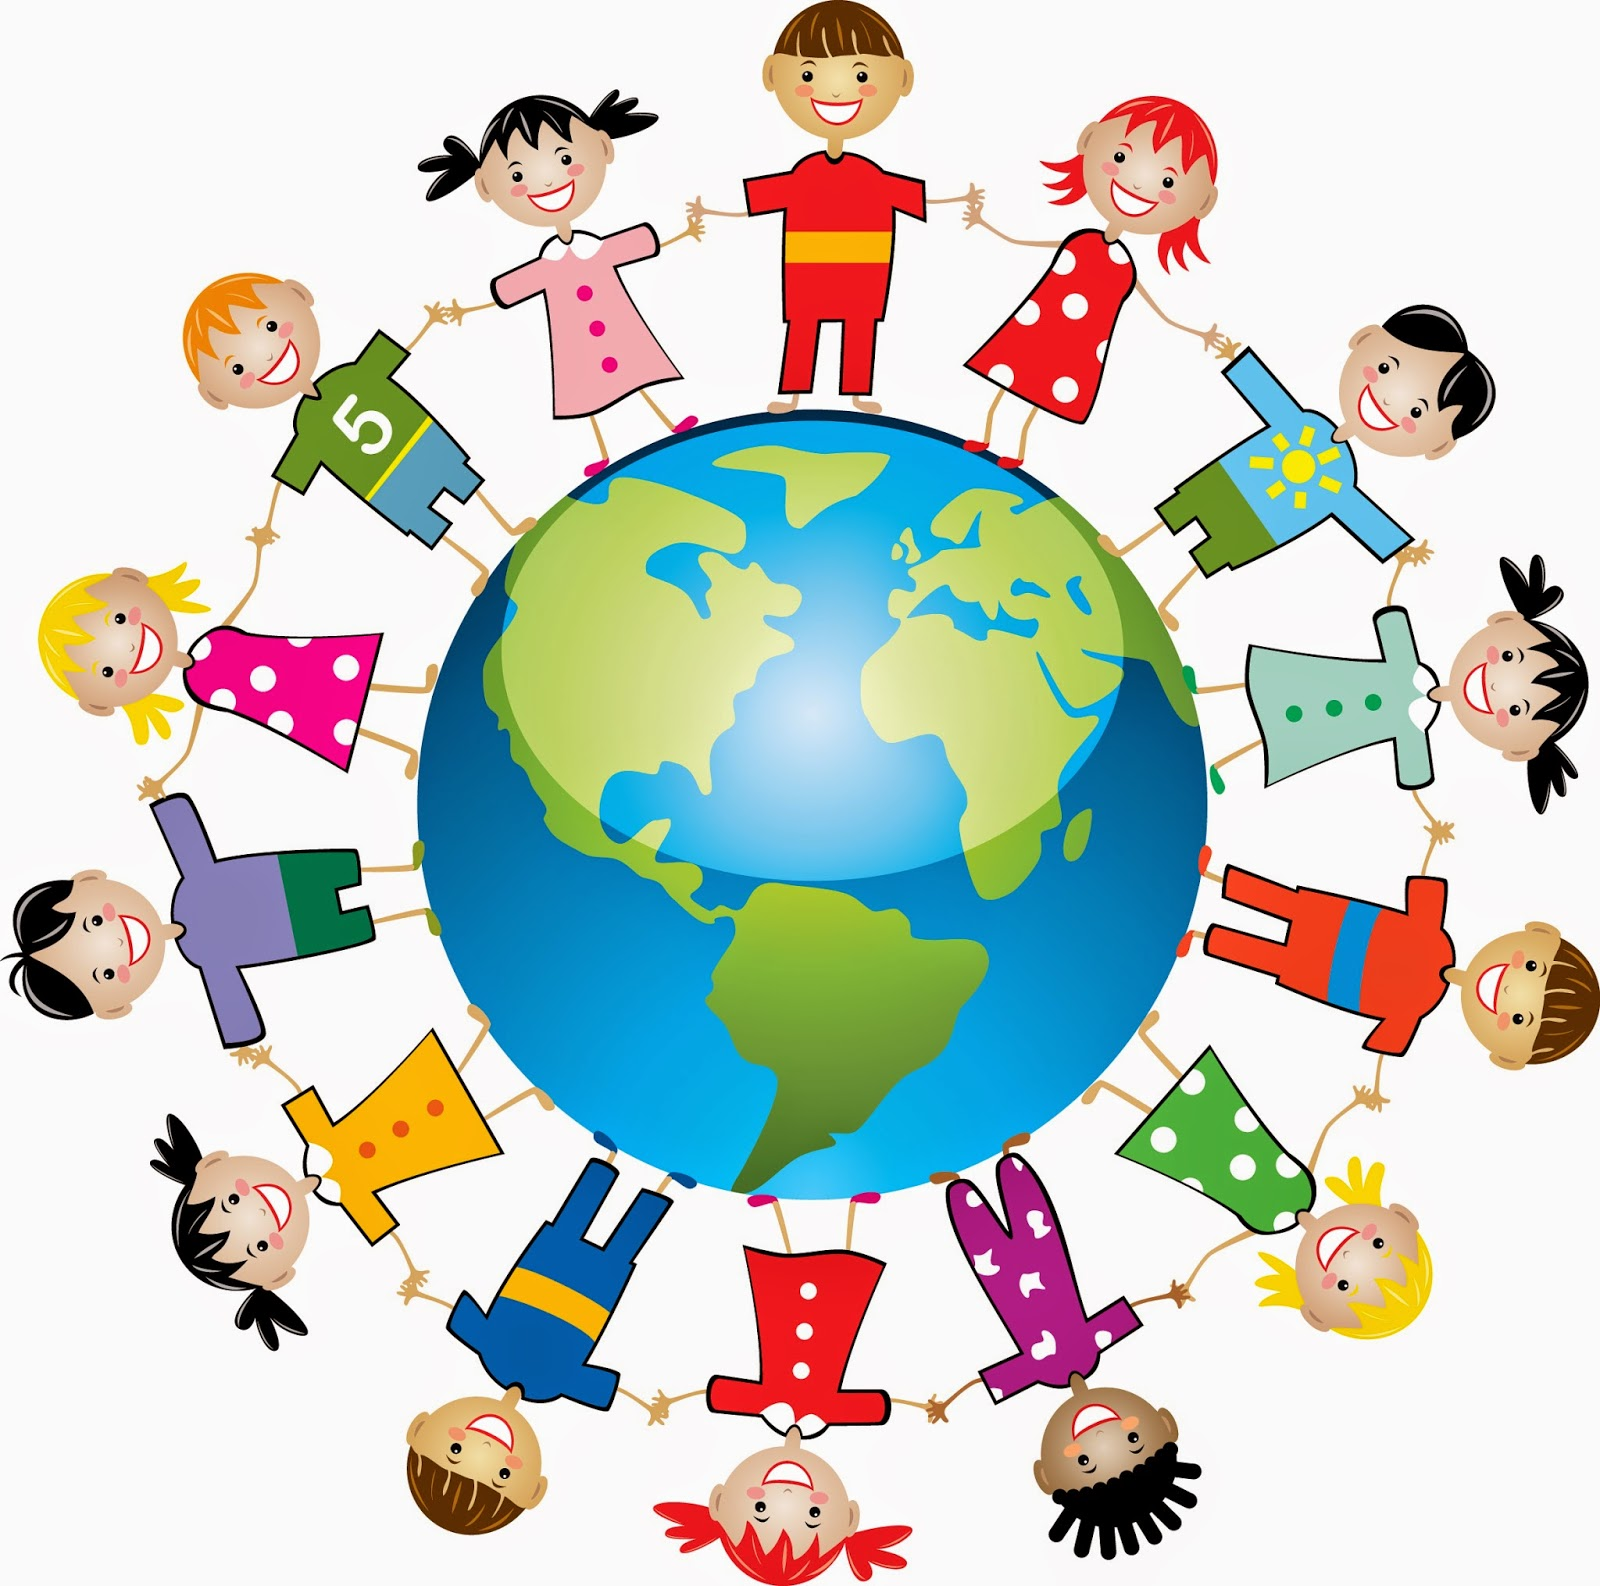 Earth clipart at getdrawings free for personal use earth 1600x1586 earth day clip art for kids clipart panda publicscrutiny Images